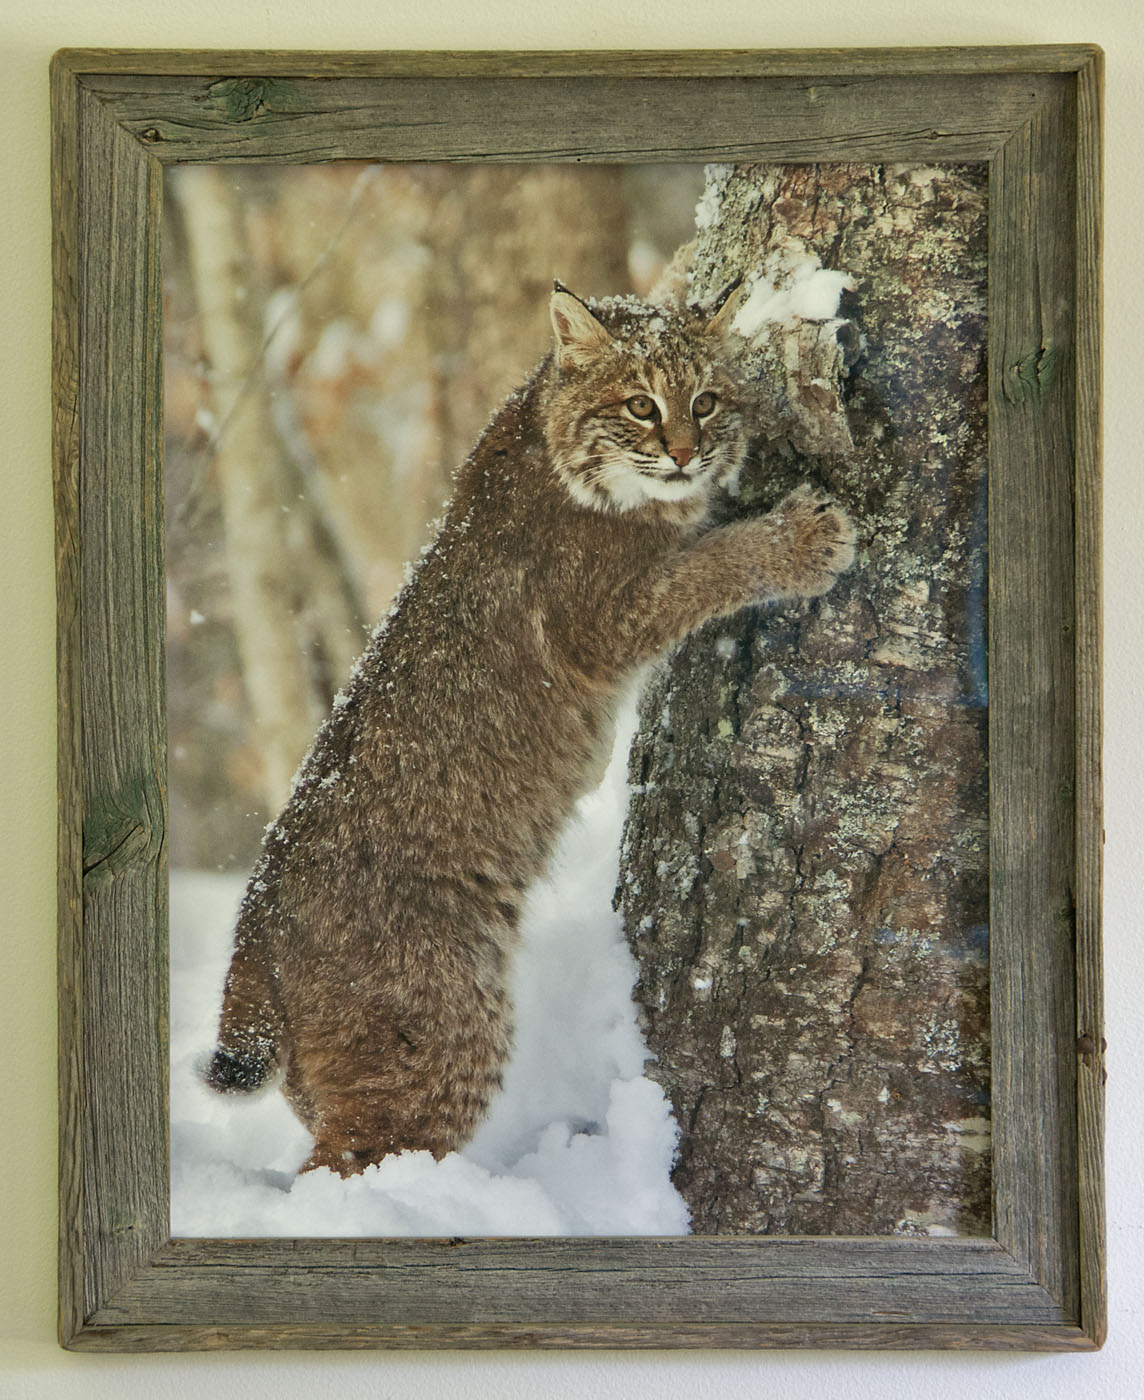 Barnwood Frame with Lynx